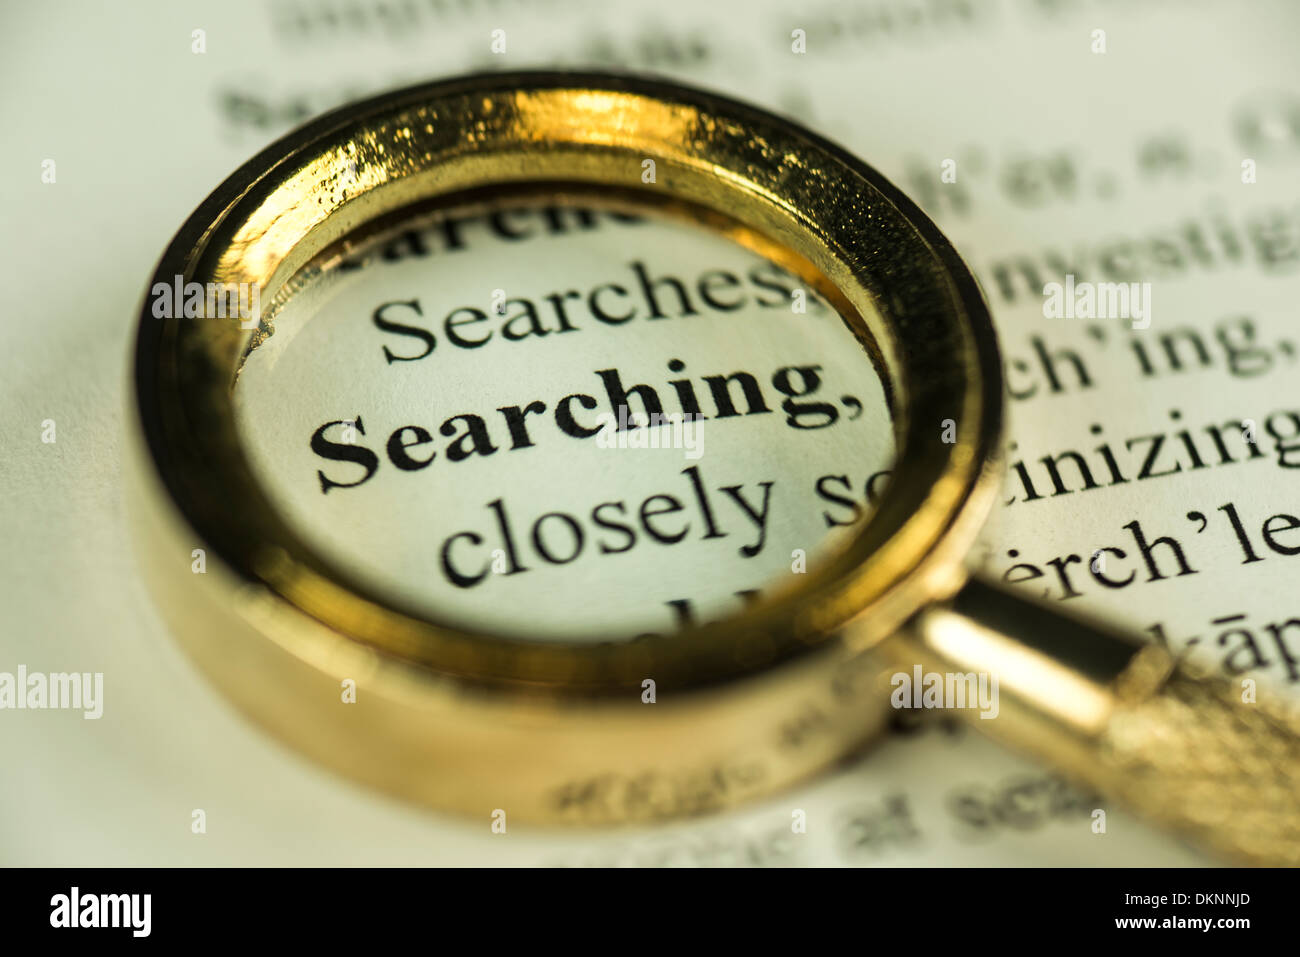 Searching Concept - Macro Image Of A Magnifying Glass Over The Word Searching In A Dictionary - Stock Image